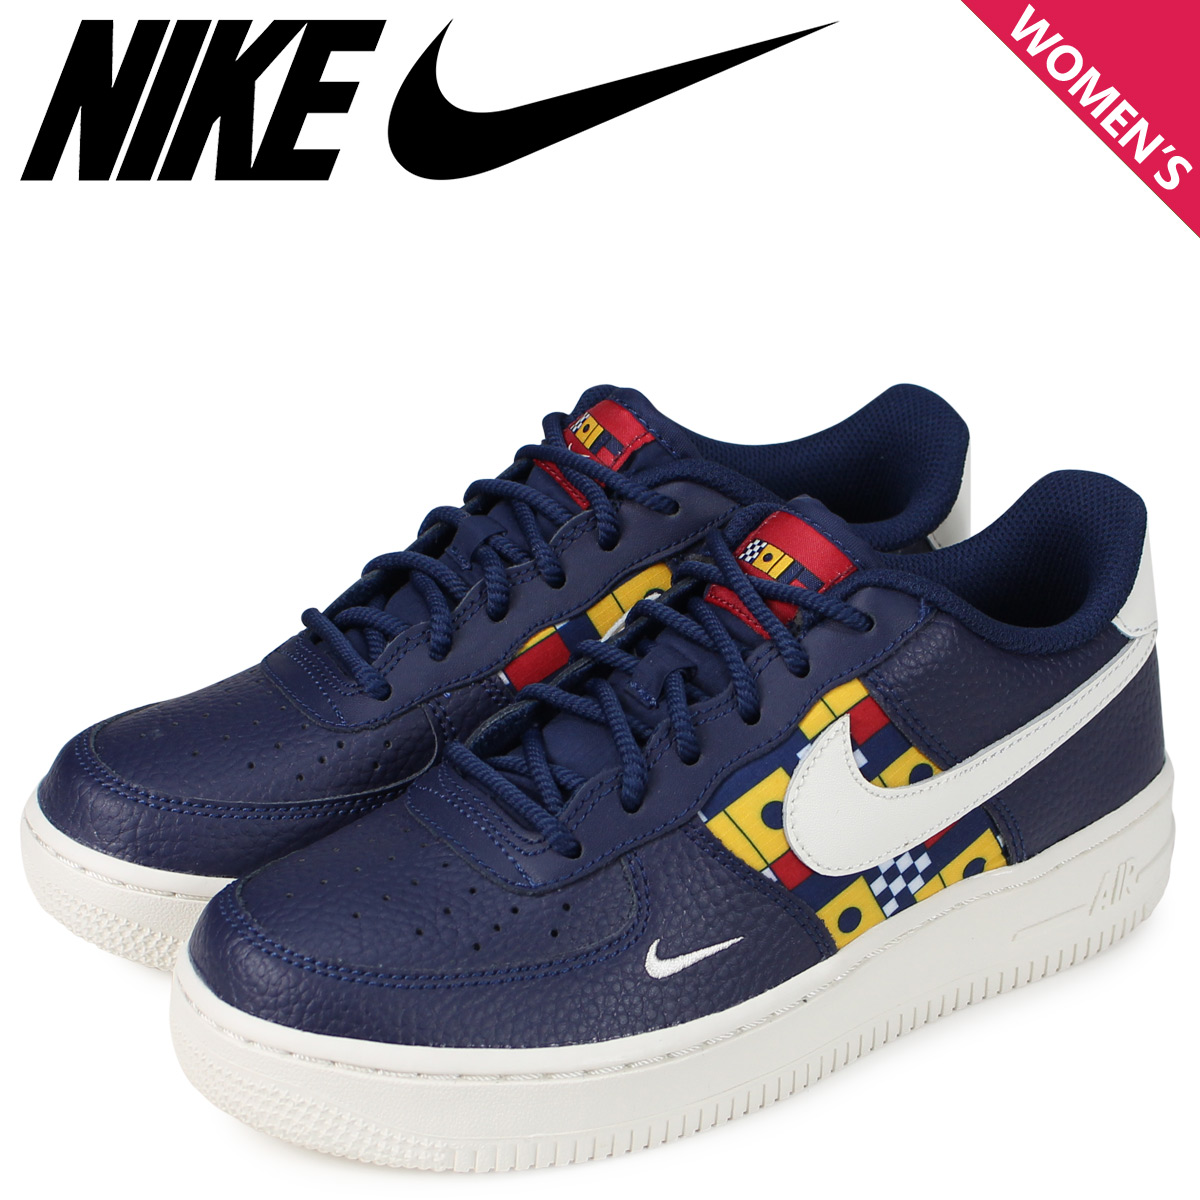 NIKE Nike air force 1 lady's sneakers AIR FORCE 1 LOW 07 LV8 GS navy AR5583 400